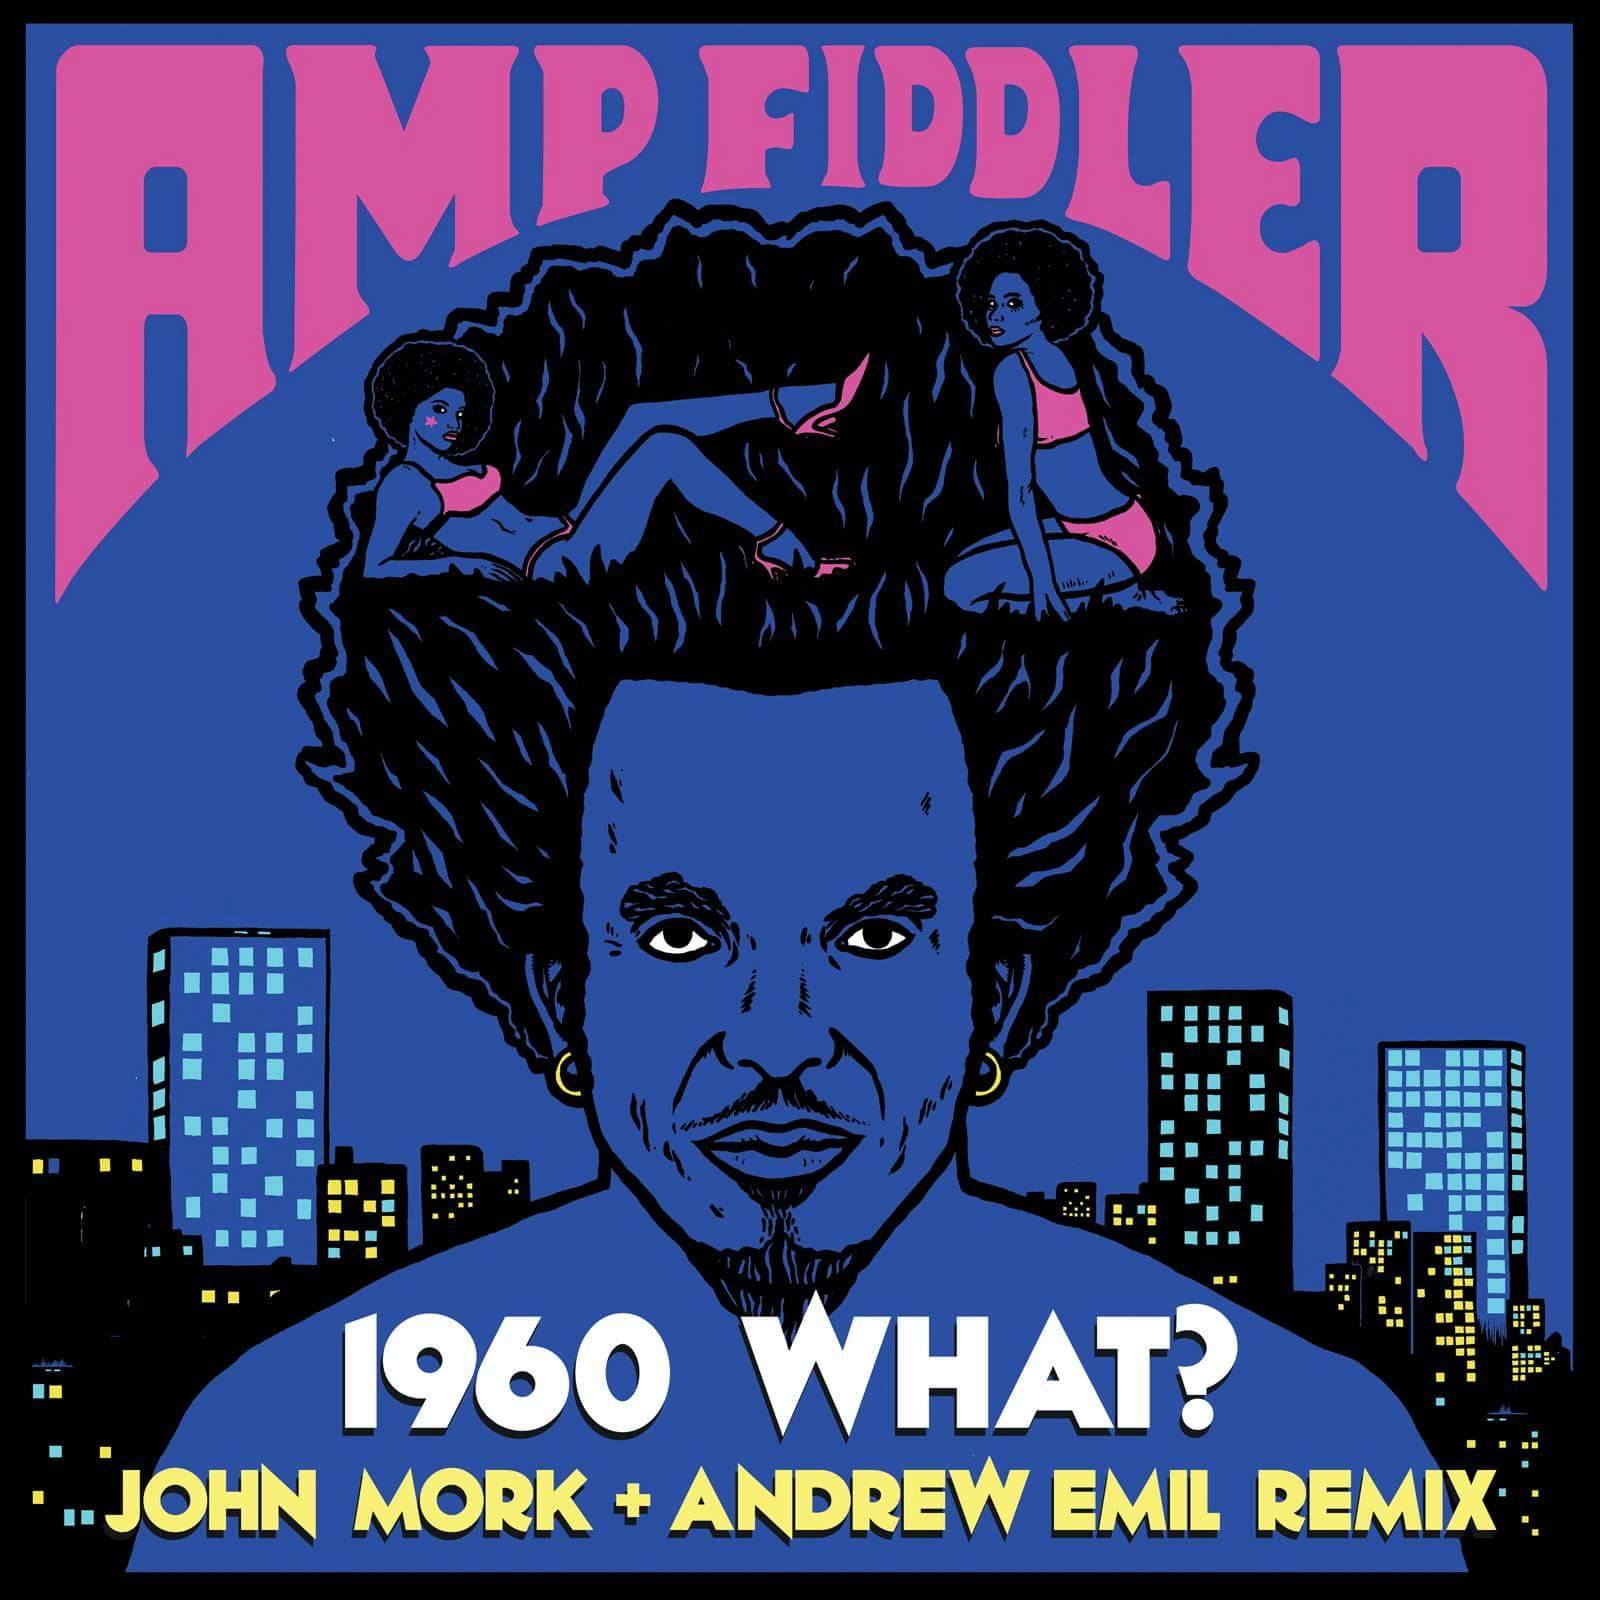 1960 What? (John Mork + Andrew Emil Remix)